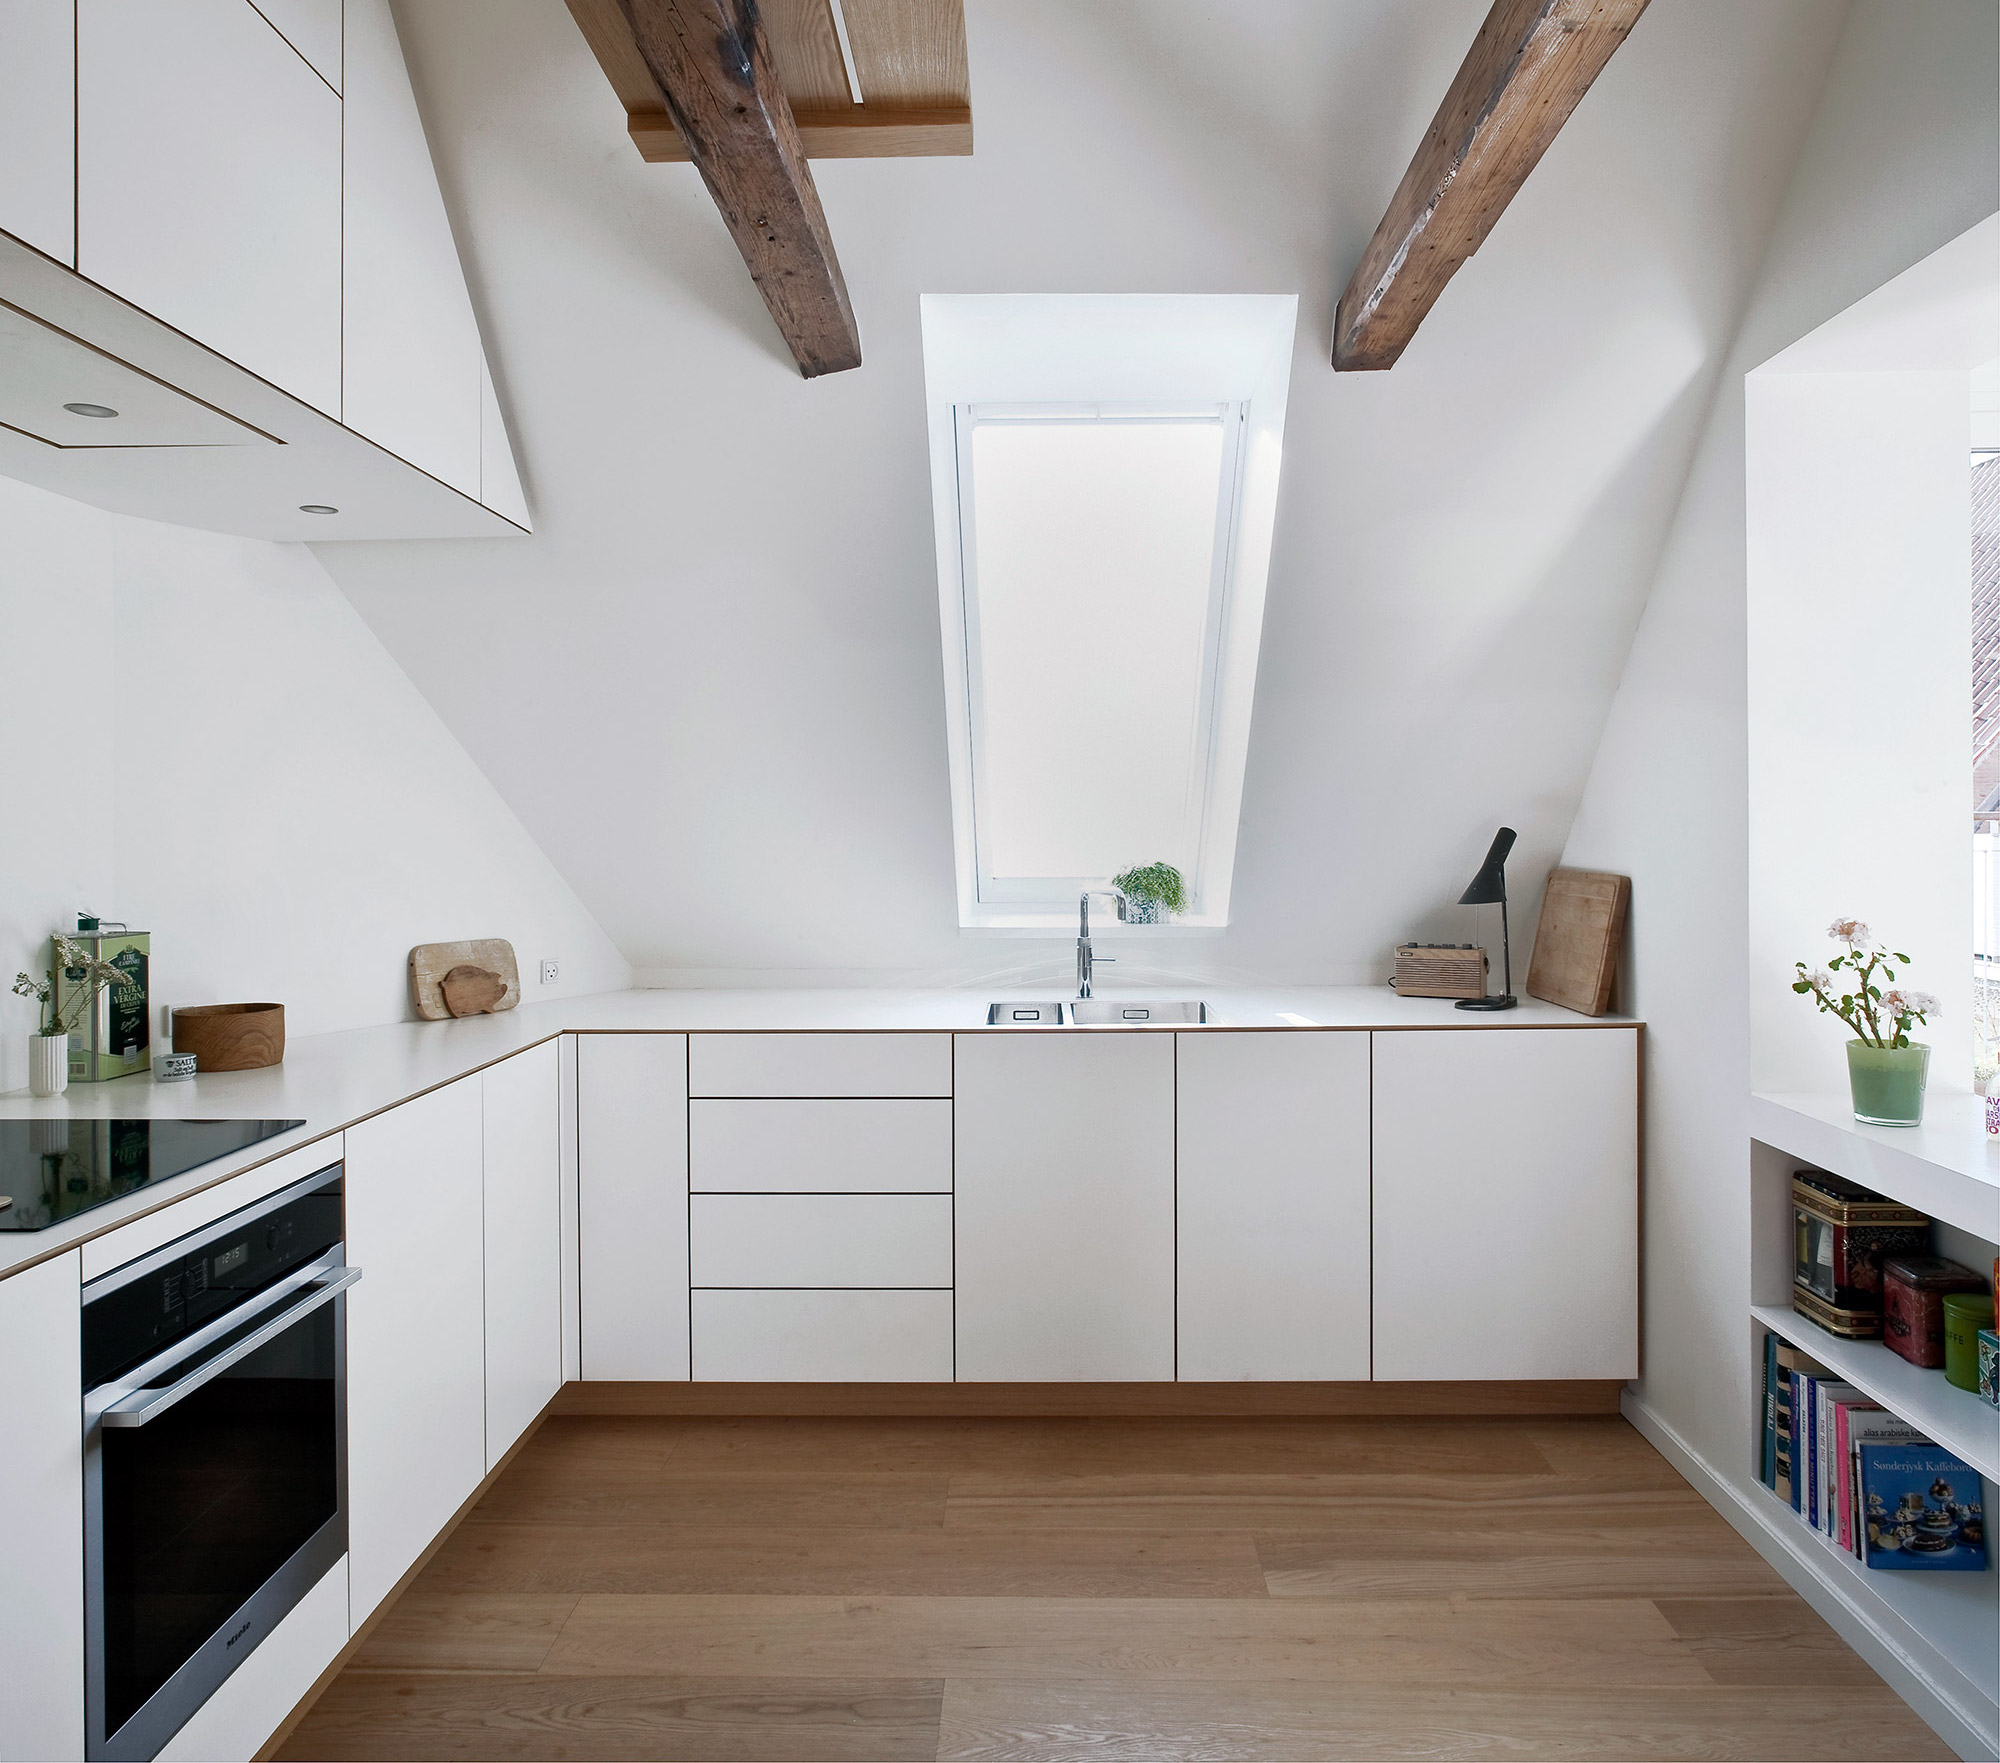 Scandinavian kitchen design in oak wood and white laminate